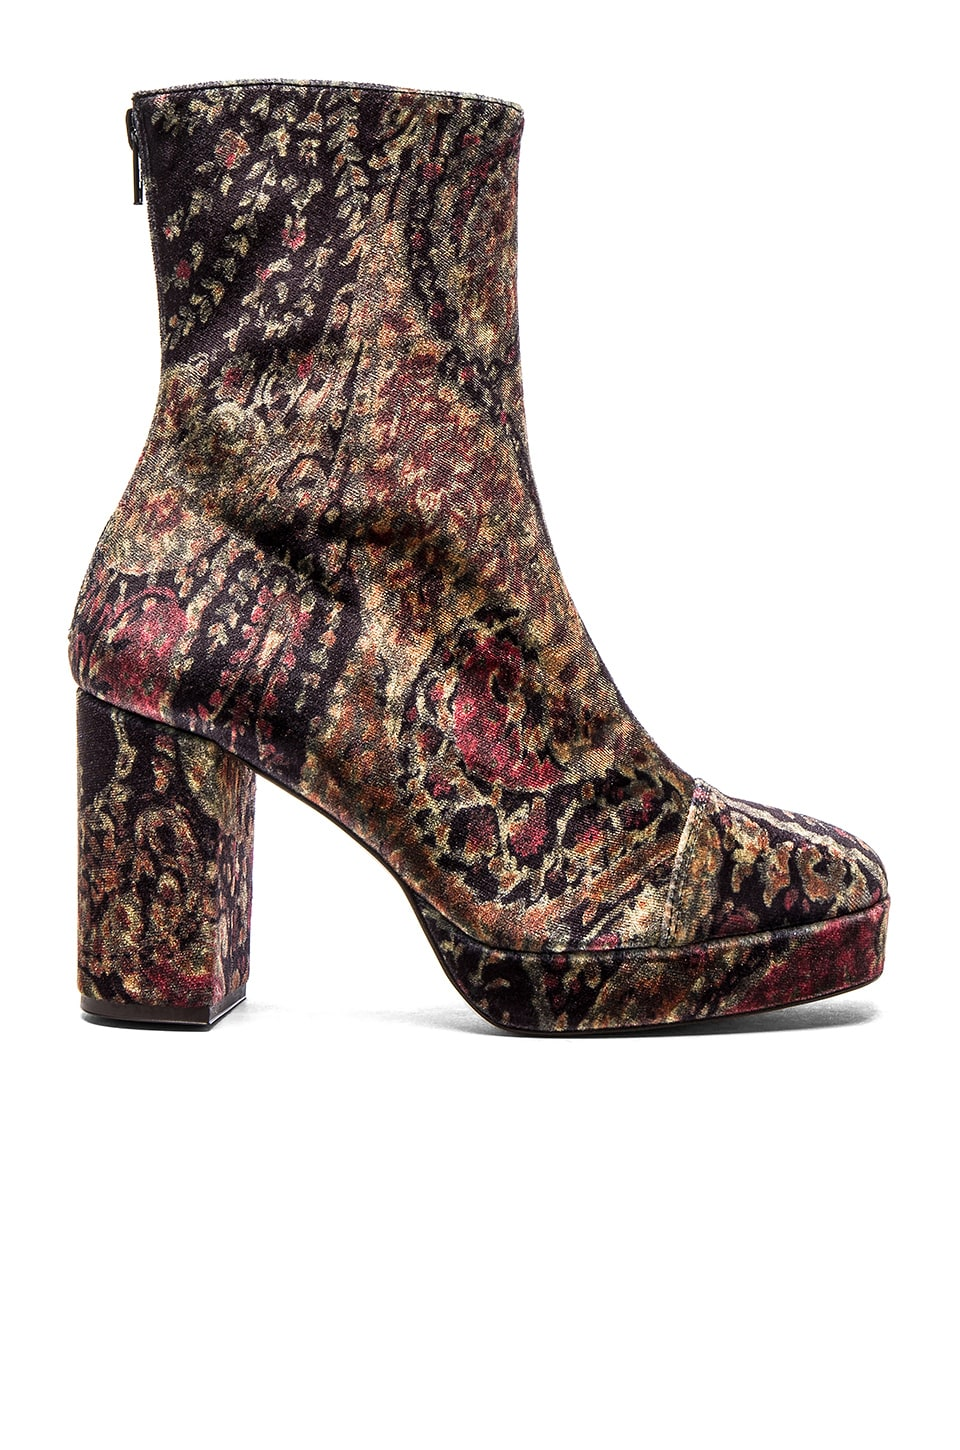 Free People Day For Night Platform Boot in Paisley Combo